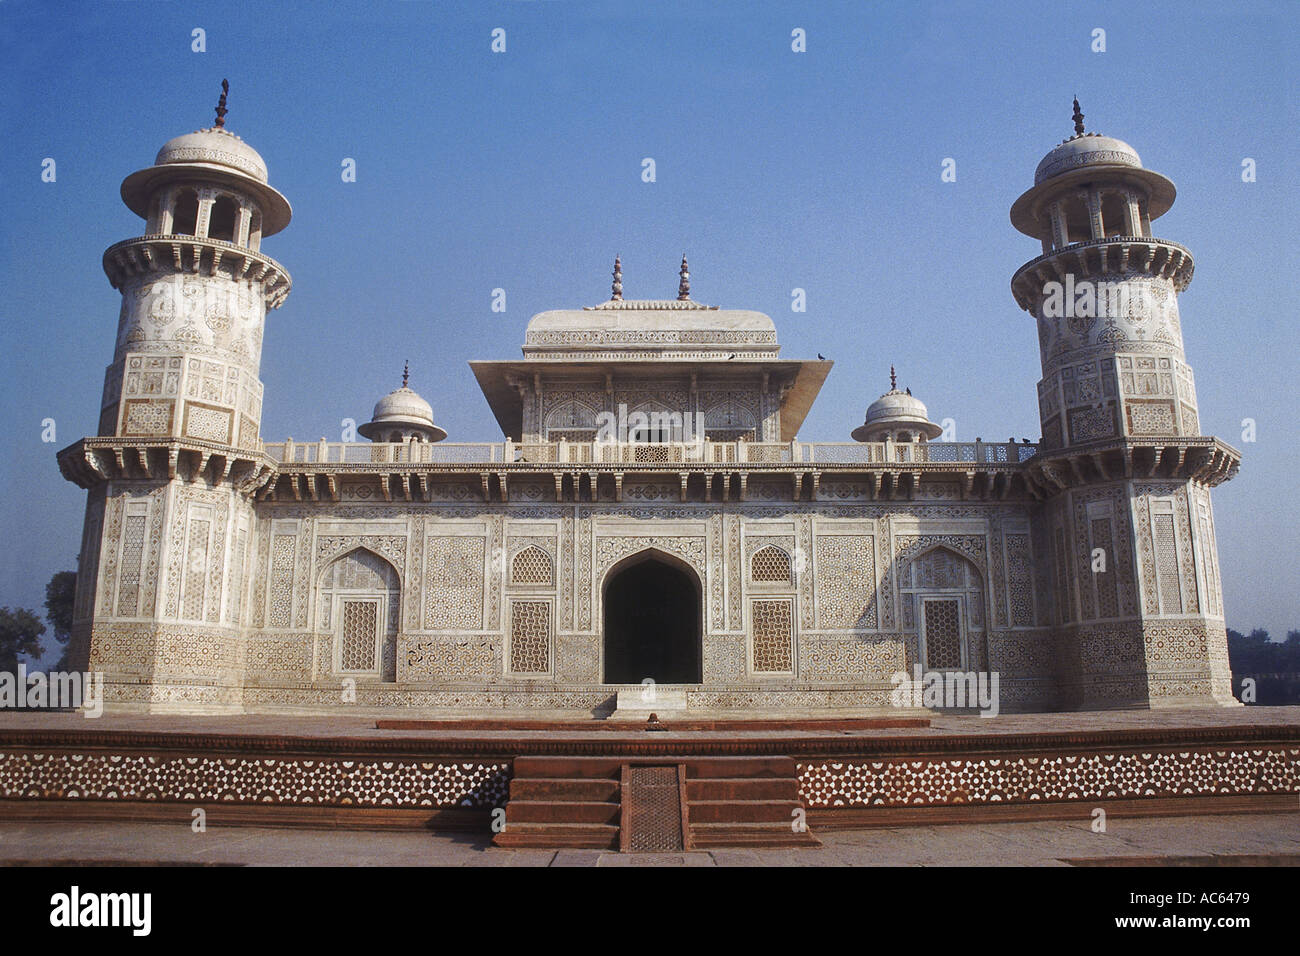 The Itmad-ud-daulah tomb stands in the centre of a grand Persian garden, an architectural gem of its times. Agra, Stock Photo